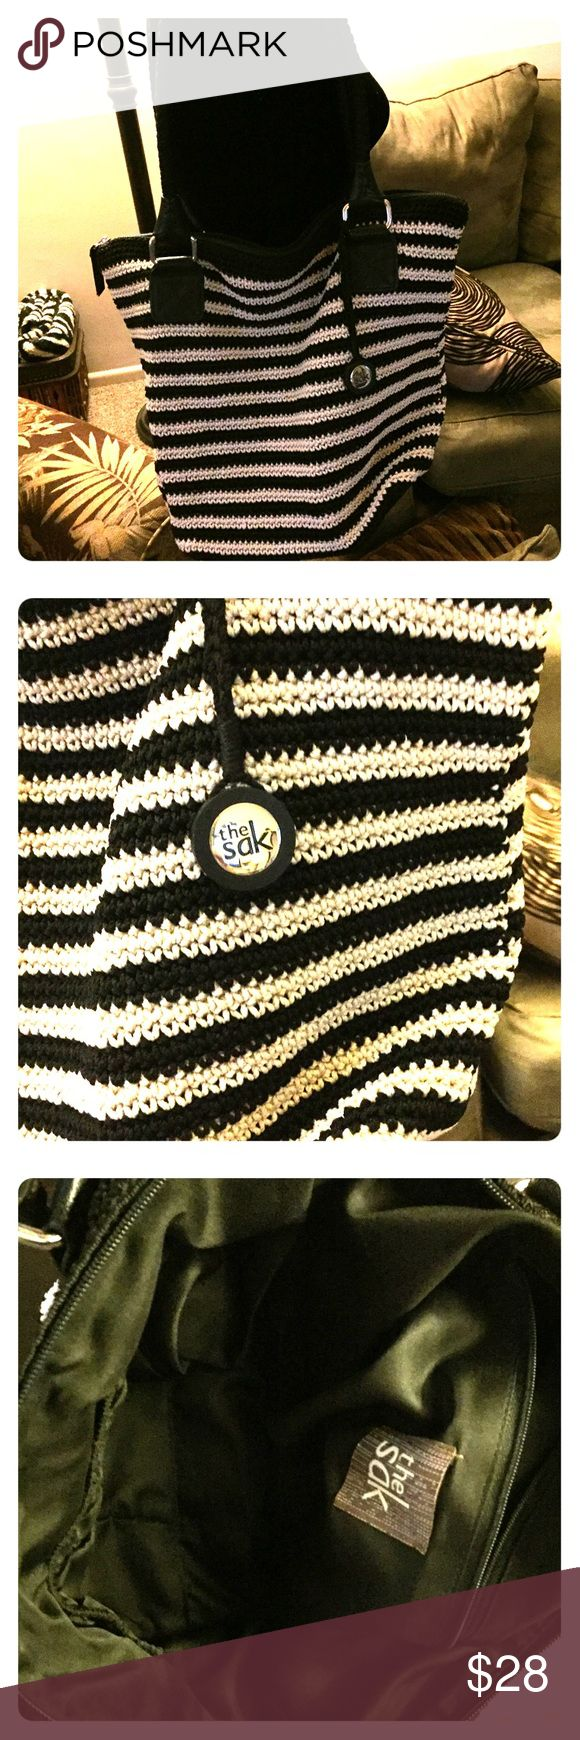 👜The SAK Purse The SAK Purse in black & white strips, perfect for summer, jeans, shorts.... Looks like new, great condition. The Sak Bags Shoulder Bags